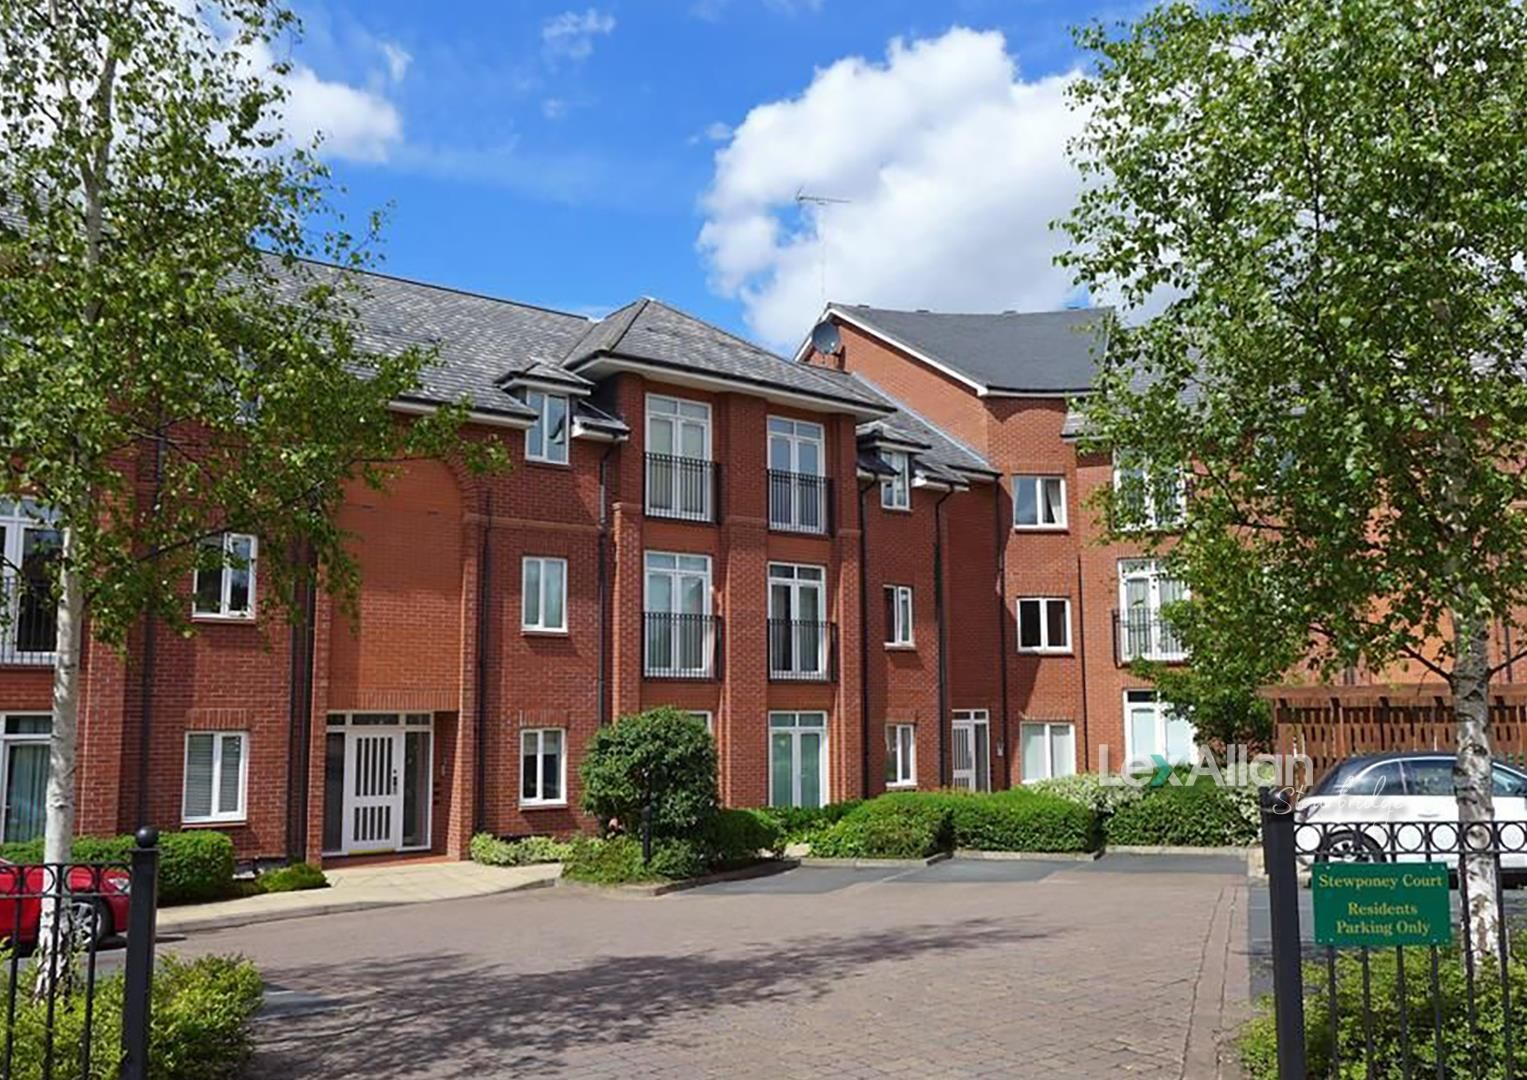 2 bed apartment for sale in Stourton, DY7